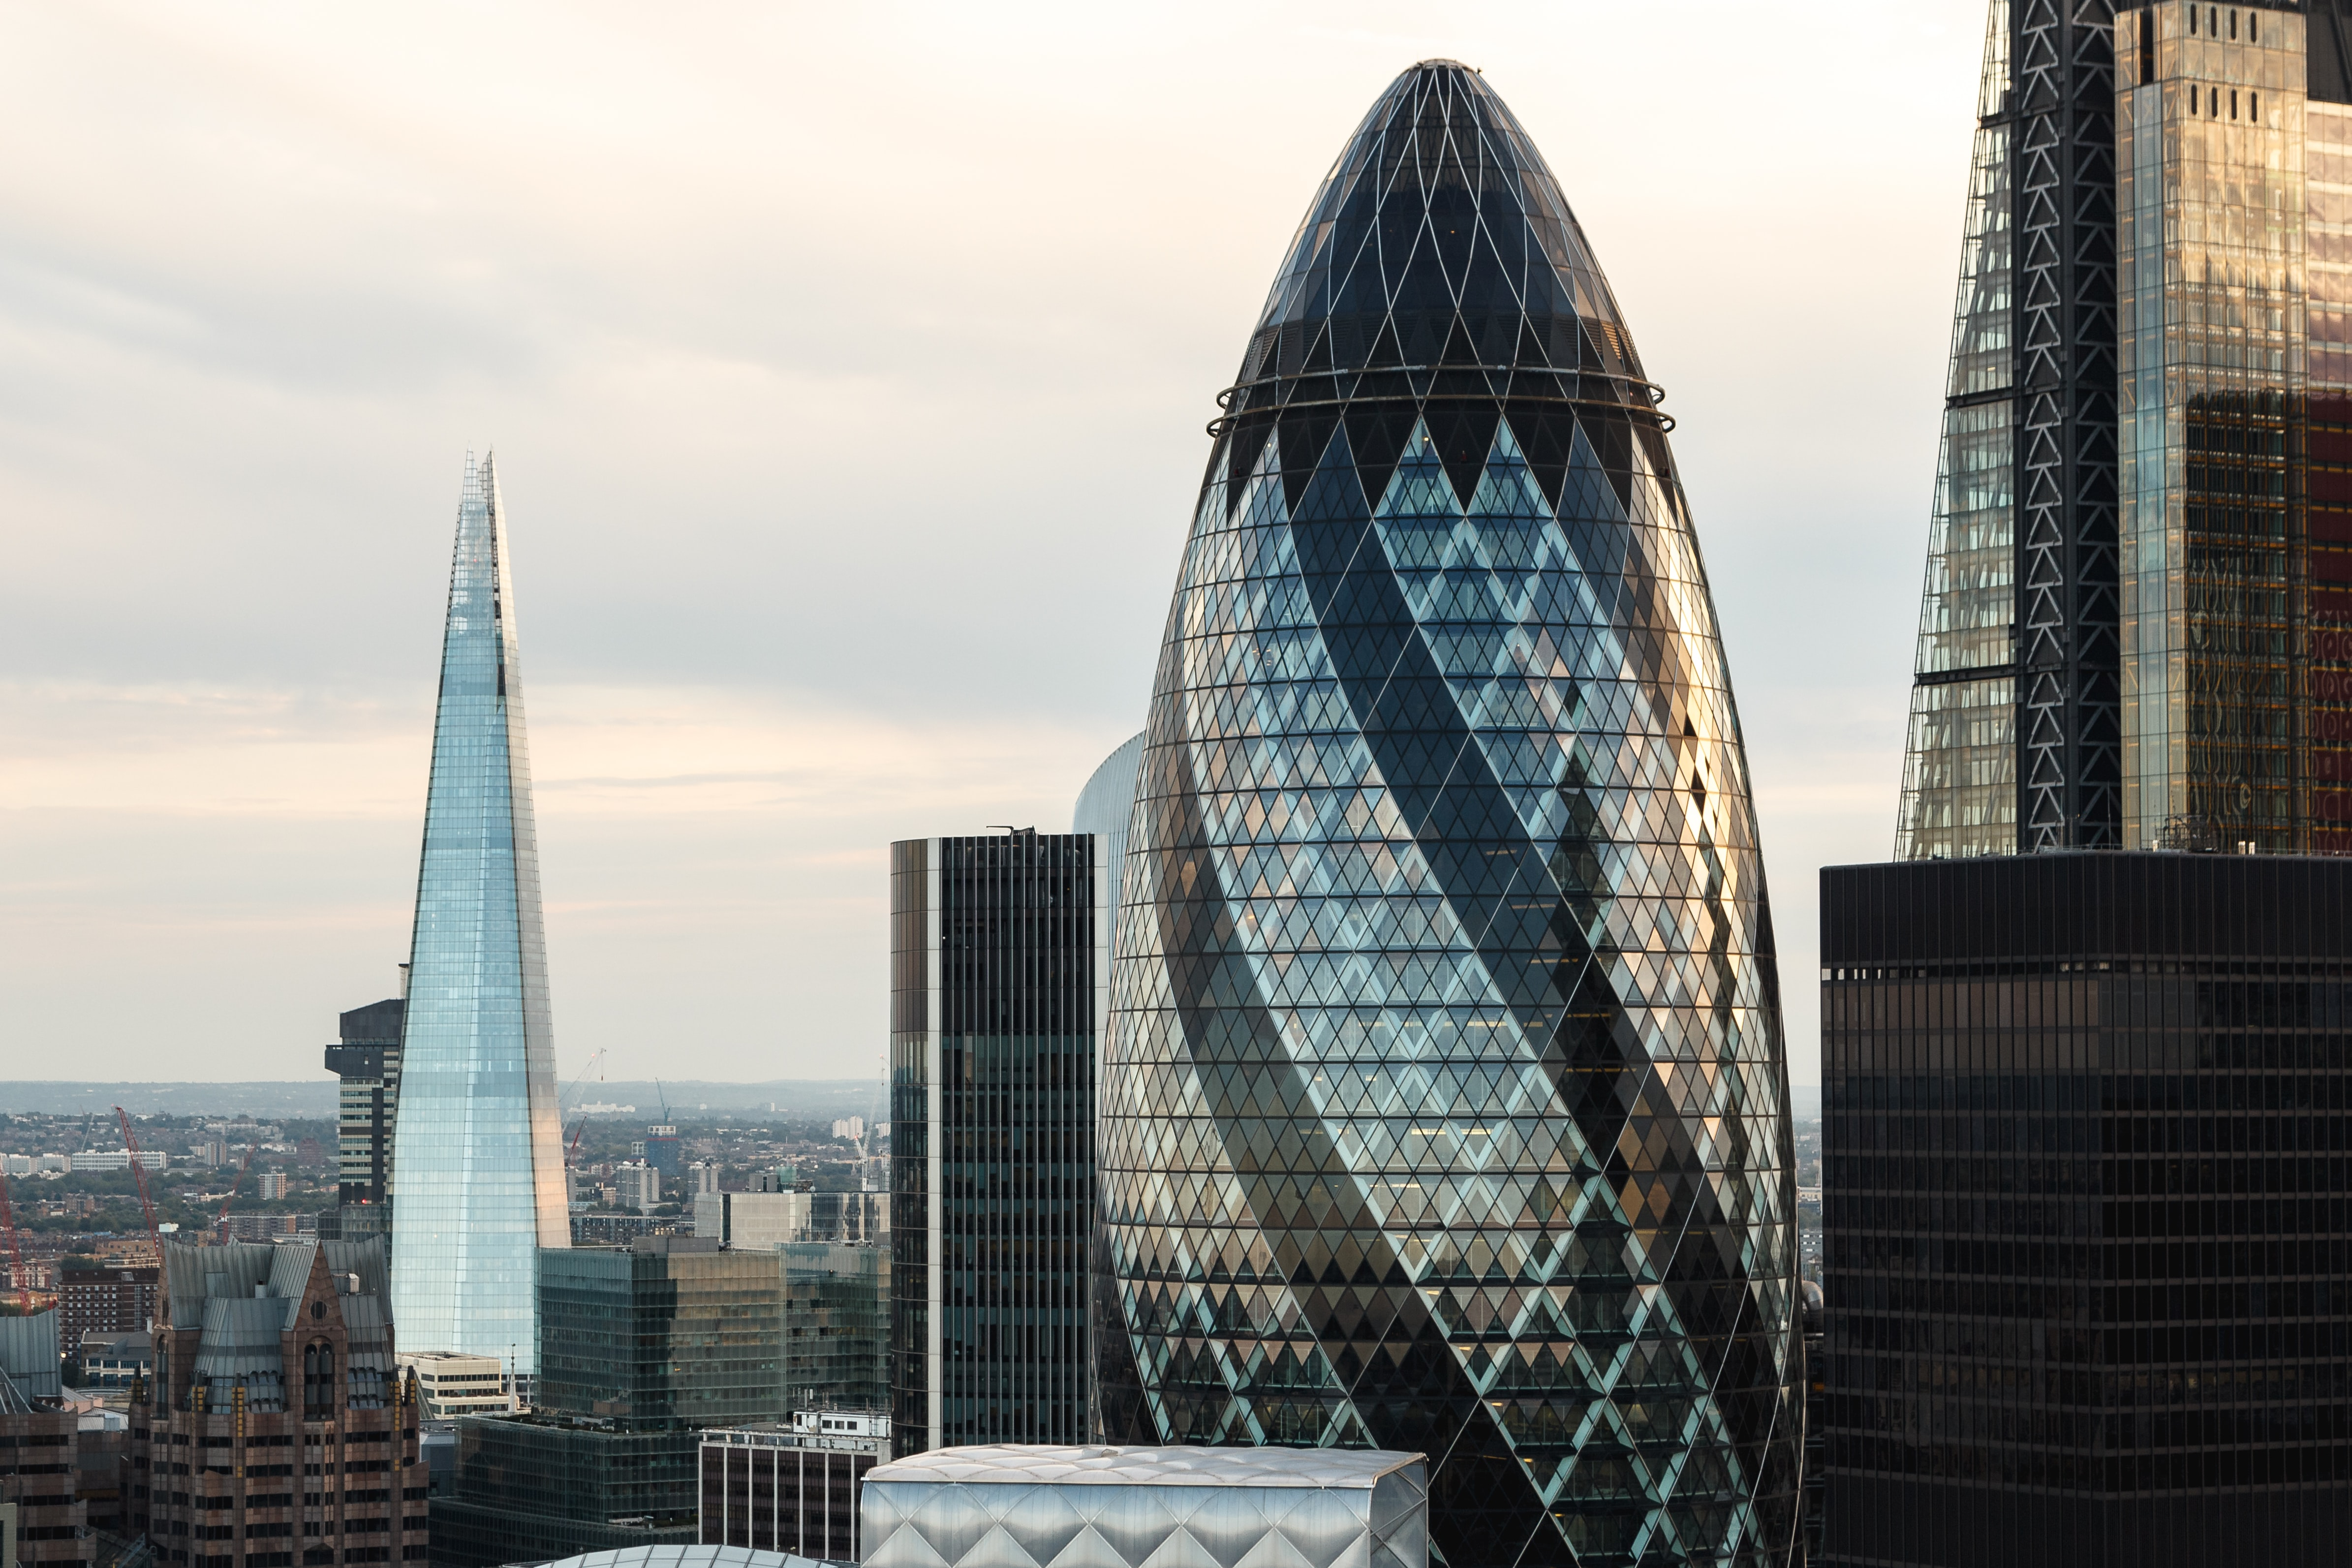 Thomas Murray - Post-Brexit Financial Stability: EC confirms 18-month equivalence for UK CCPs